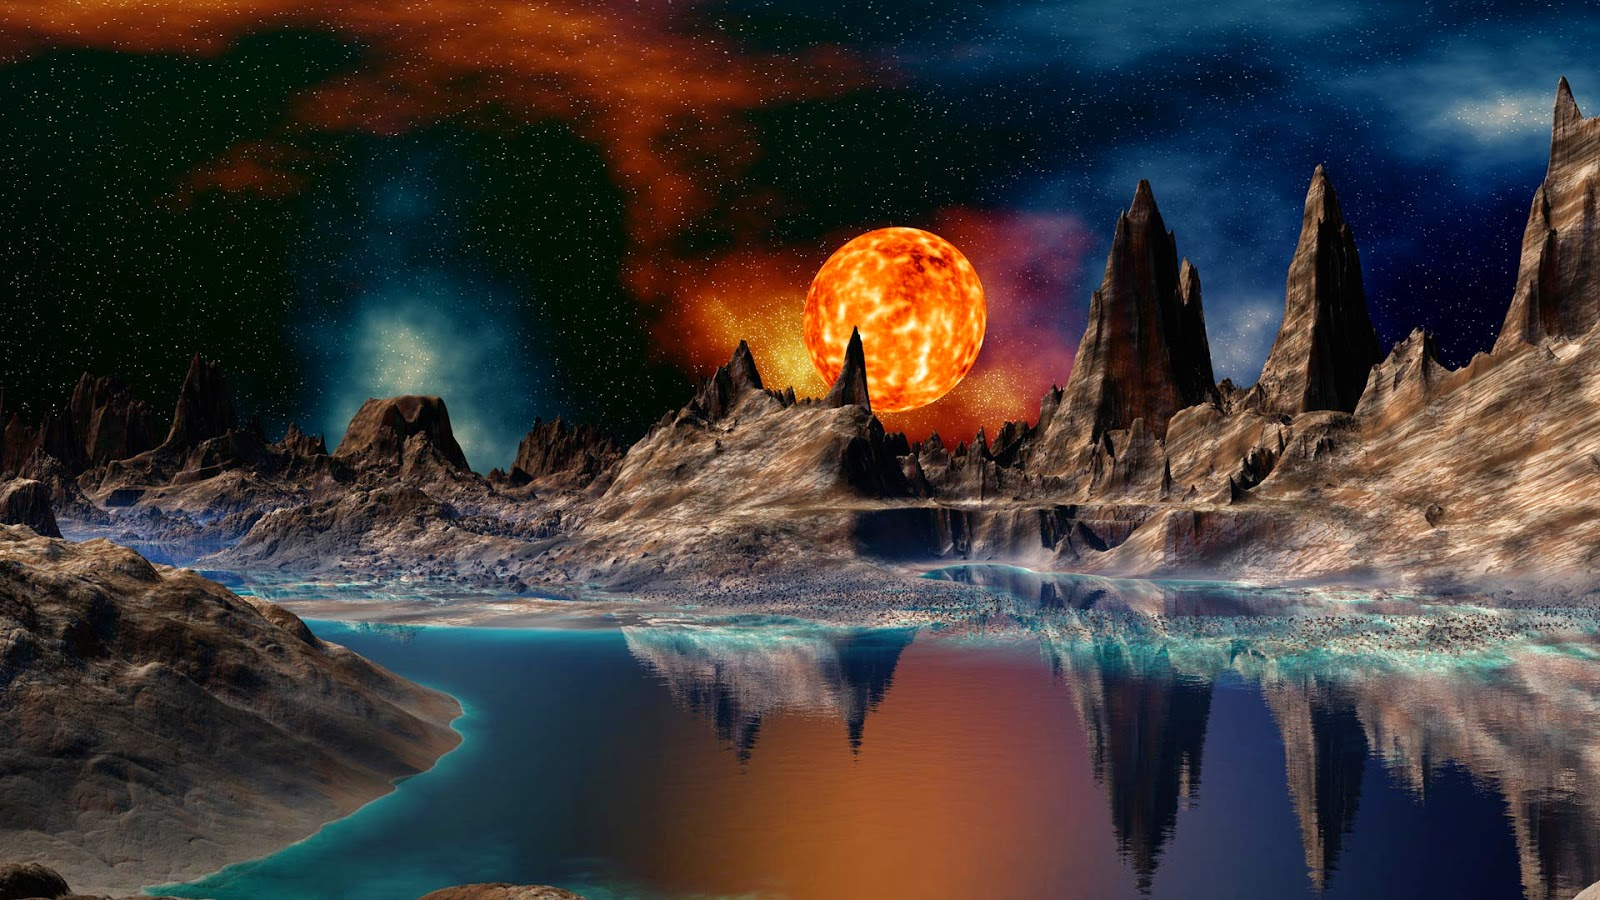 Free download Software Games Wallpapers Books Android smartphone Apps Movies : Mountains hd ...